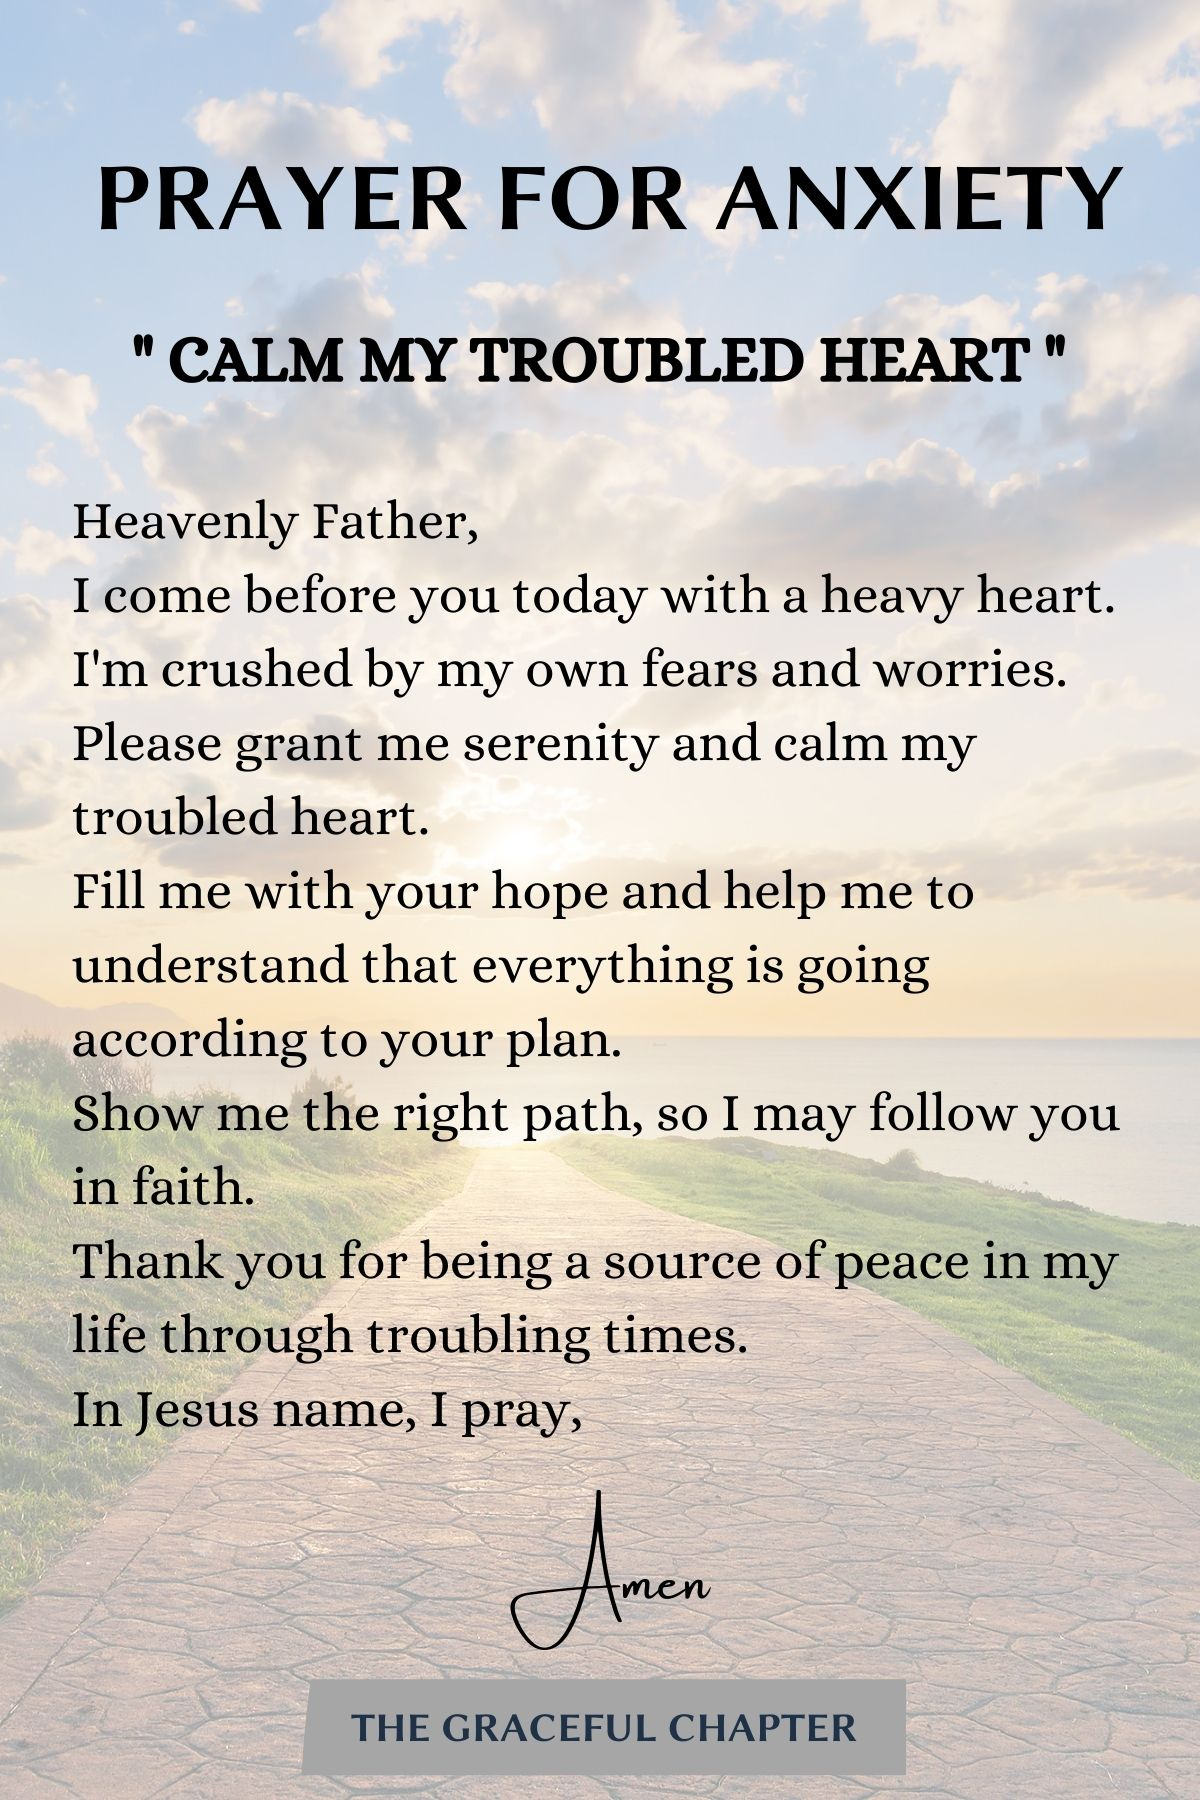 prayers for anxiety - calm my troubled heart